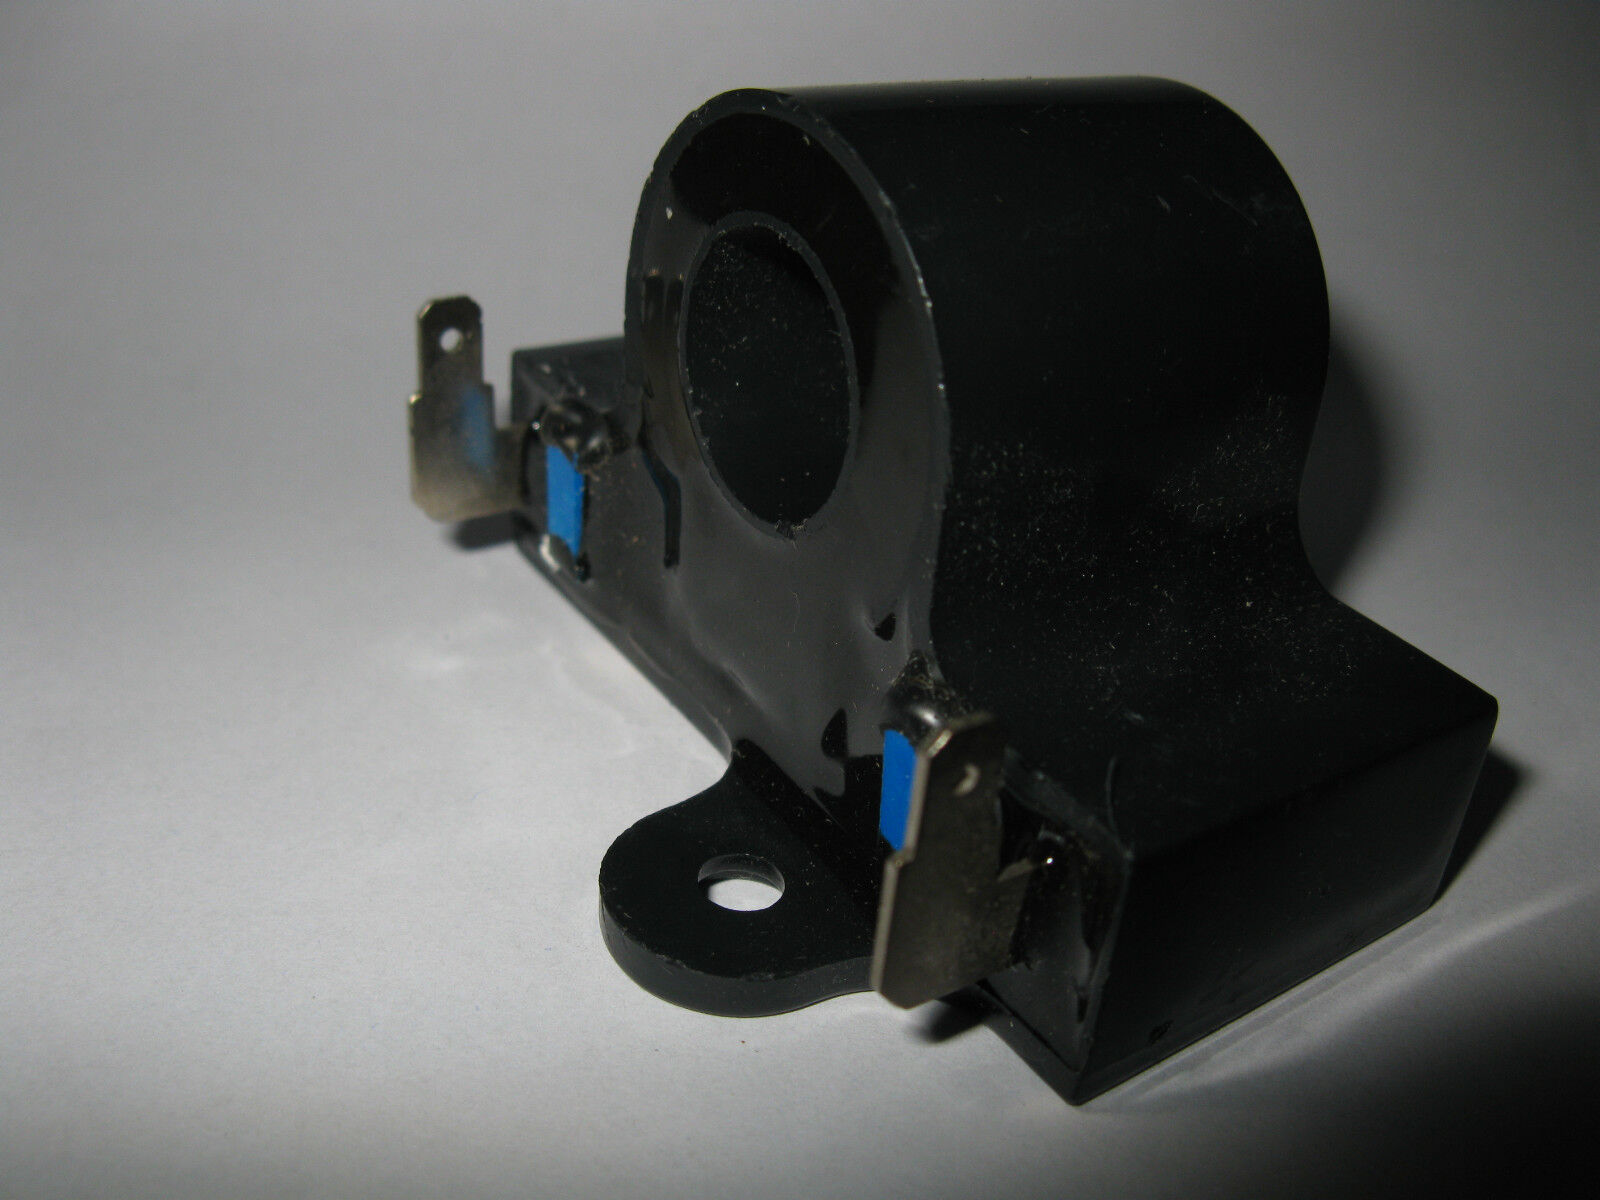 25854G01 Fits E-Z-GO: Electric Stens 851-228 Inductive Throttle Sensor 1994 and Newer Replaces E-Z-GO: 25854-G01